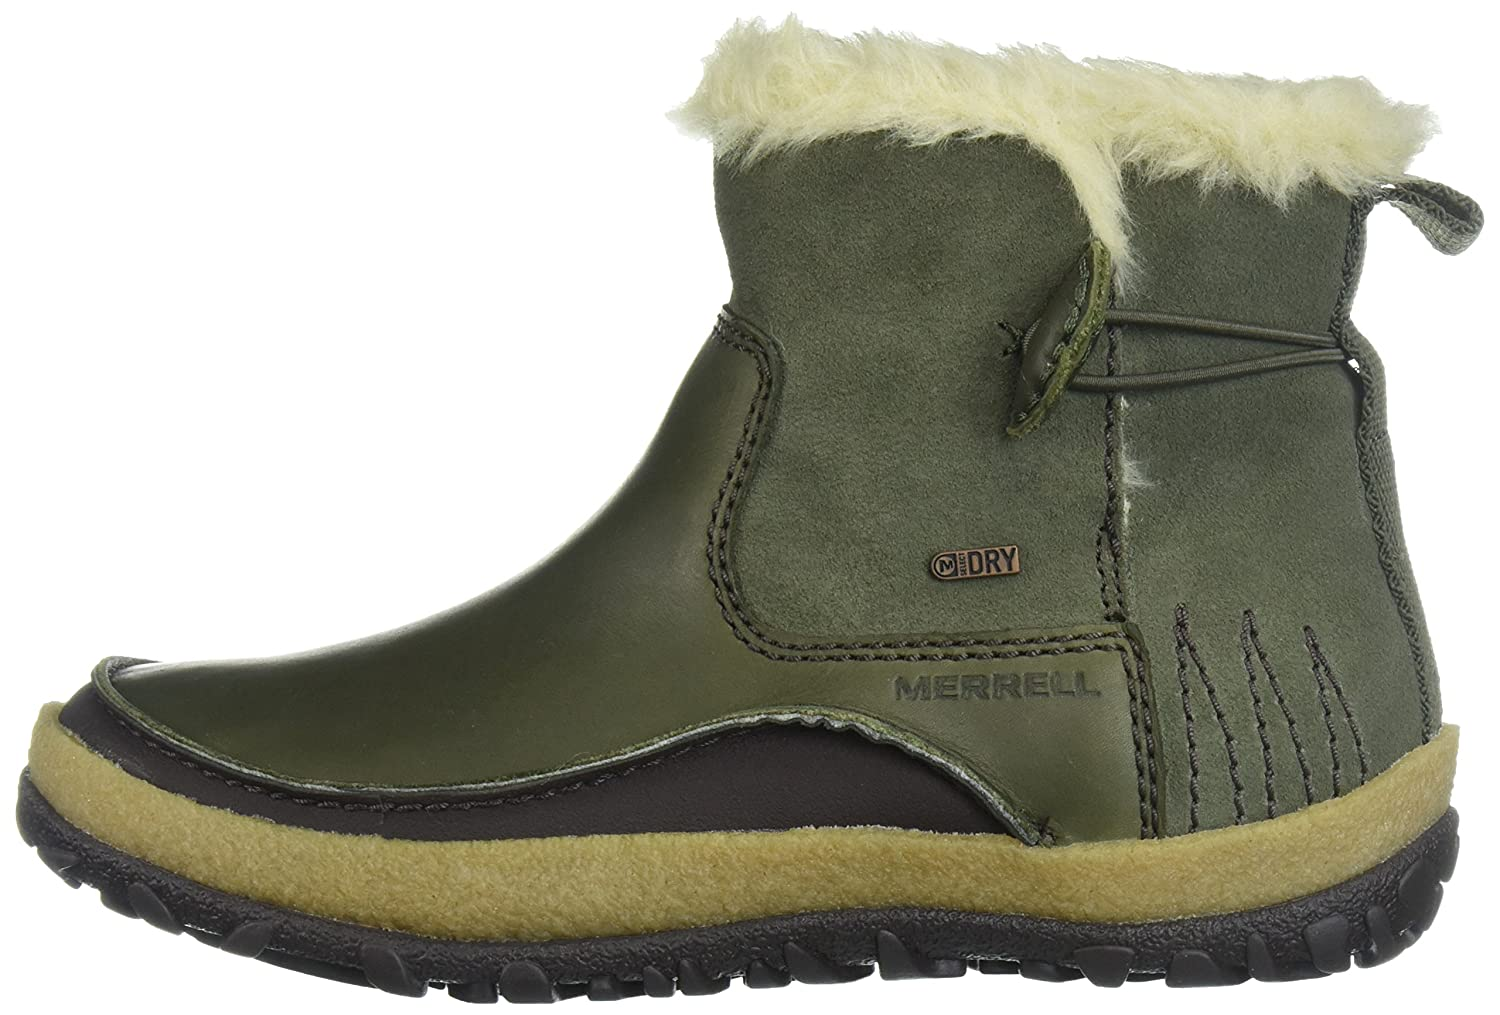 Merrell Women's Tremblant Pull on Polar Waterproof Snow Boot B01MZ08O2H 9.5 B(M) US|Dusty Olive